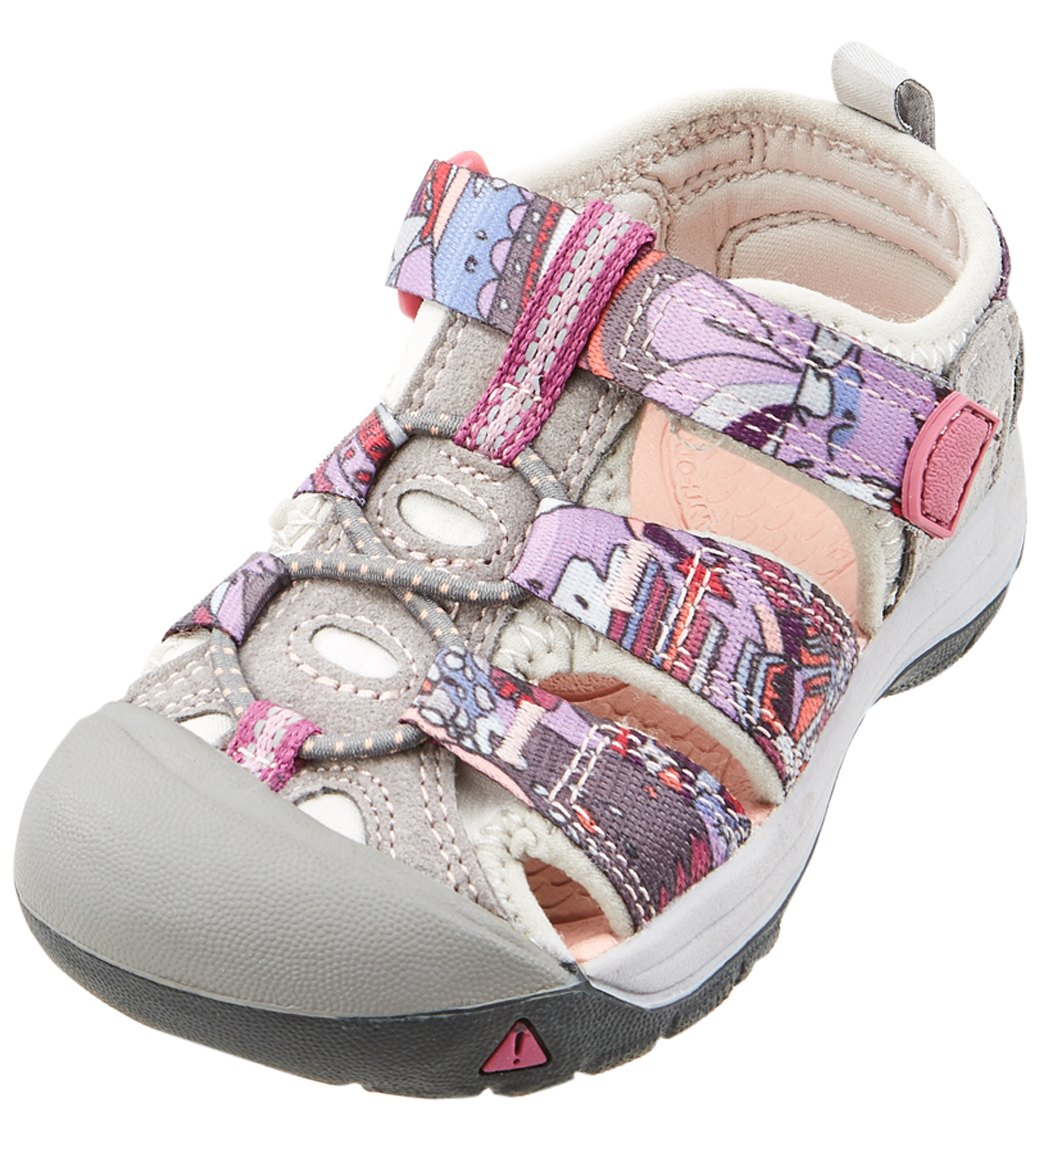 save off 5c56c 1e0e2 Keen Toddler's Newport H2 Water Shoes